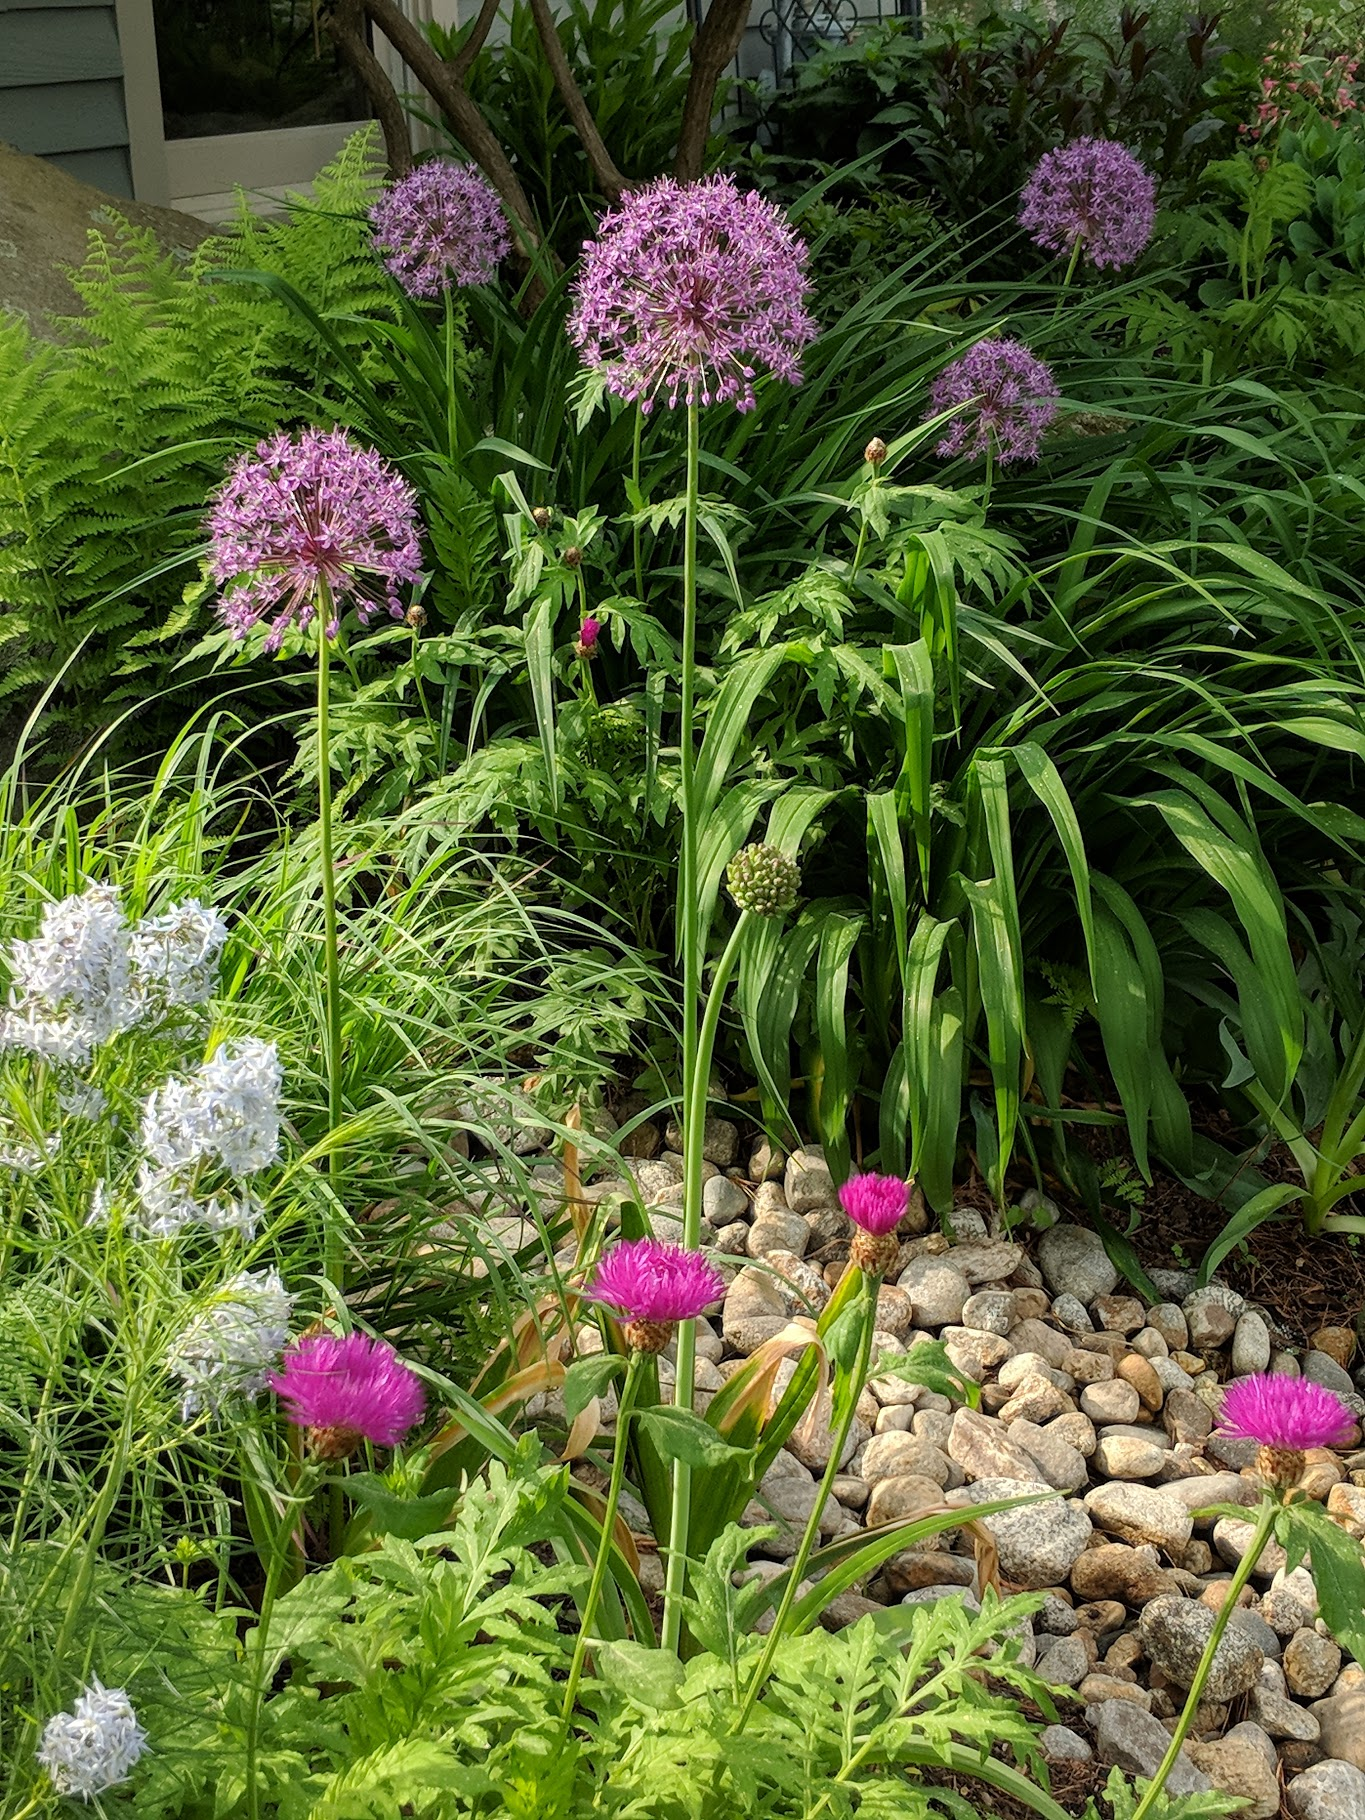 Shades of purple and blue: allium, amsonia, and knapweed